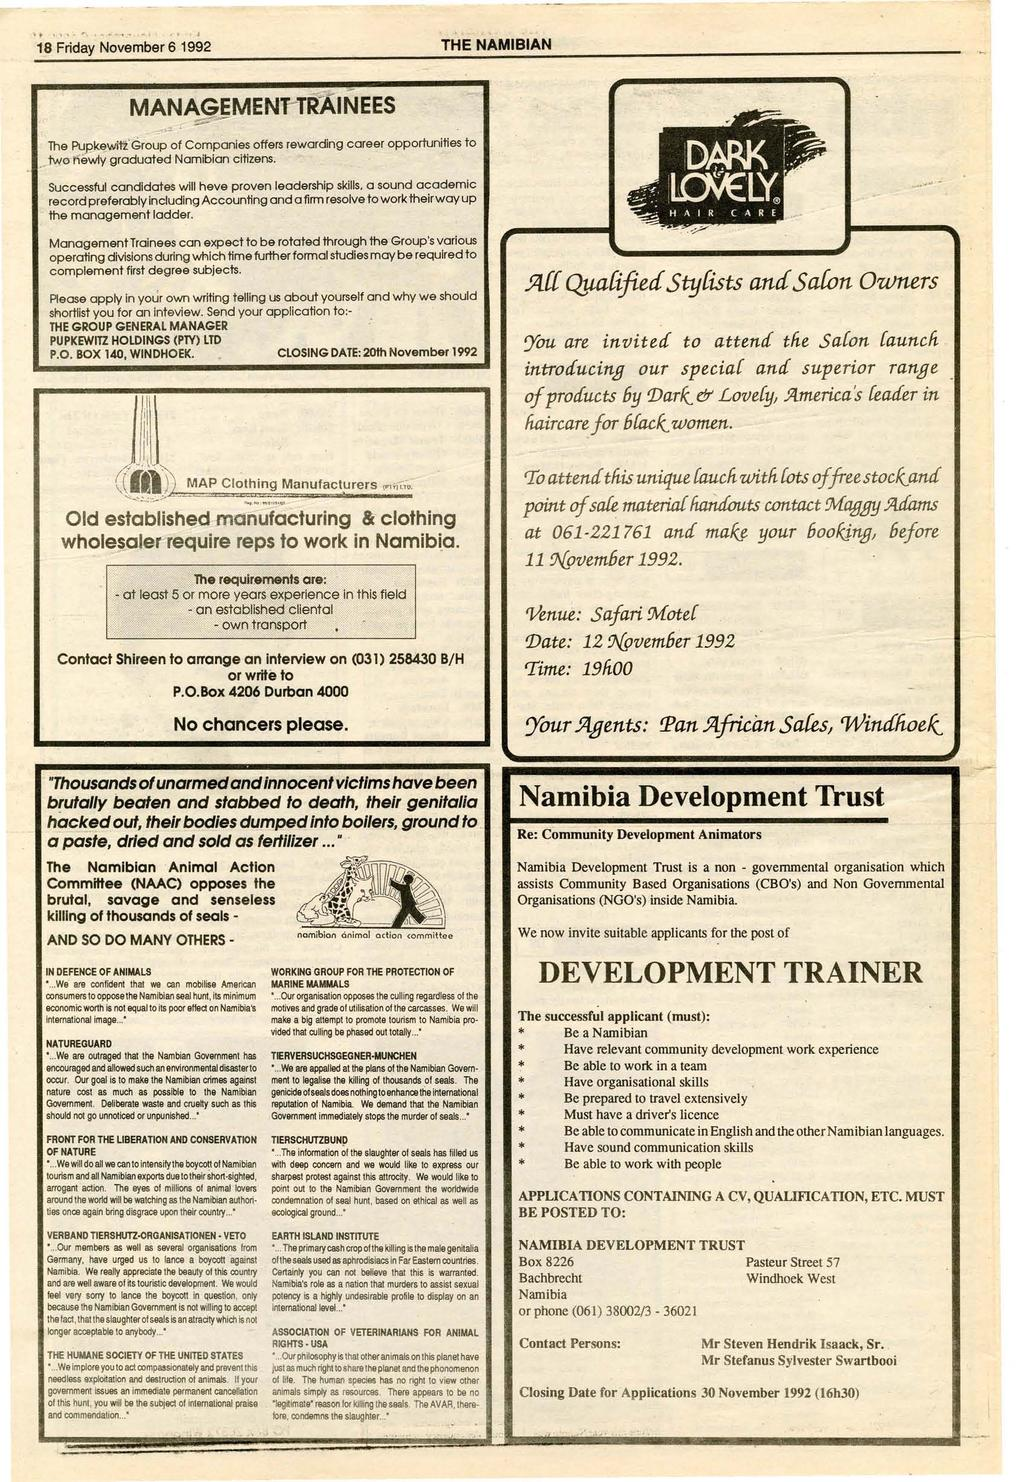 "\..,.,'. r.....,..... _""...... 18 Friday November 6 1992 THE NAMIBIAN MANAGEMENT-TRAINEES ~....-.::~ ---- The Pu.8k~witz> Group of Companies offers rewarding career opportunities to."